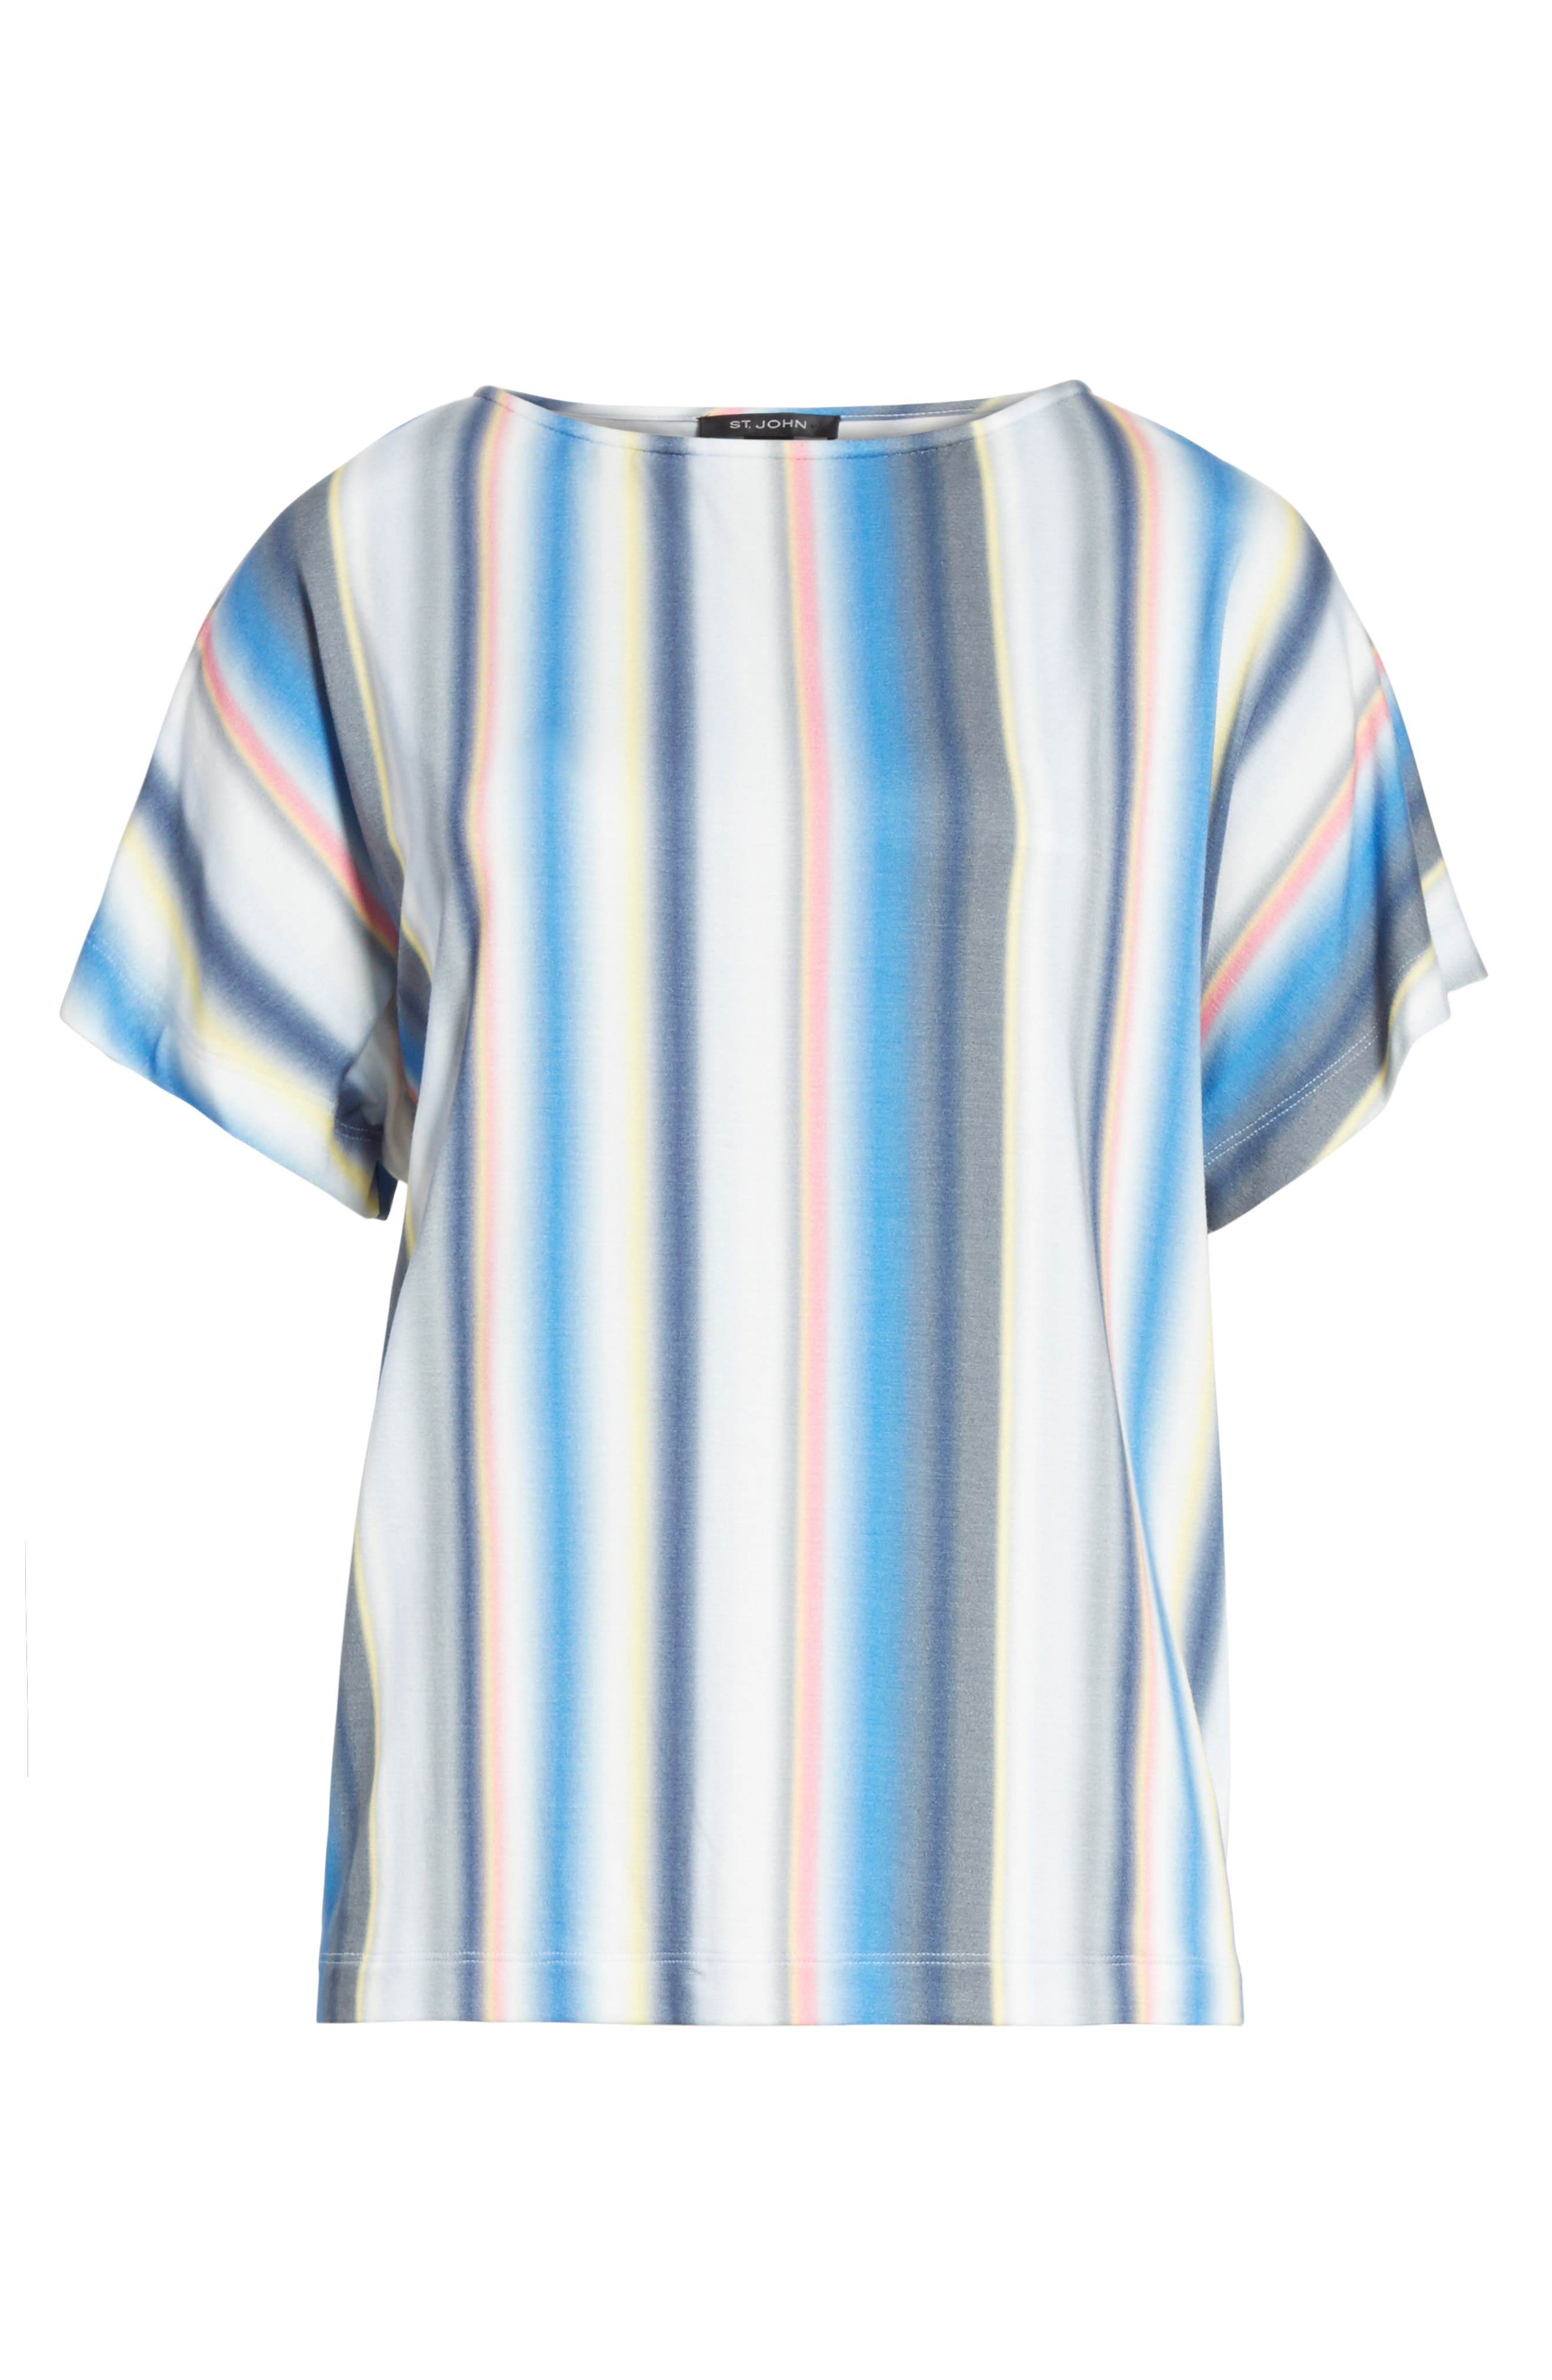 Blurred Stripe Jersey Top,                             Alternate thumbnail 6, color,                             420